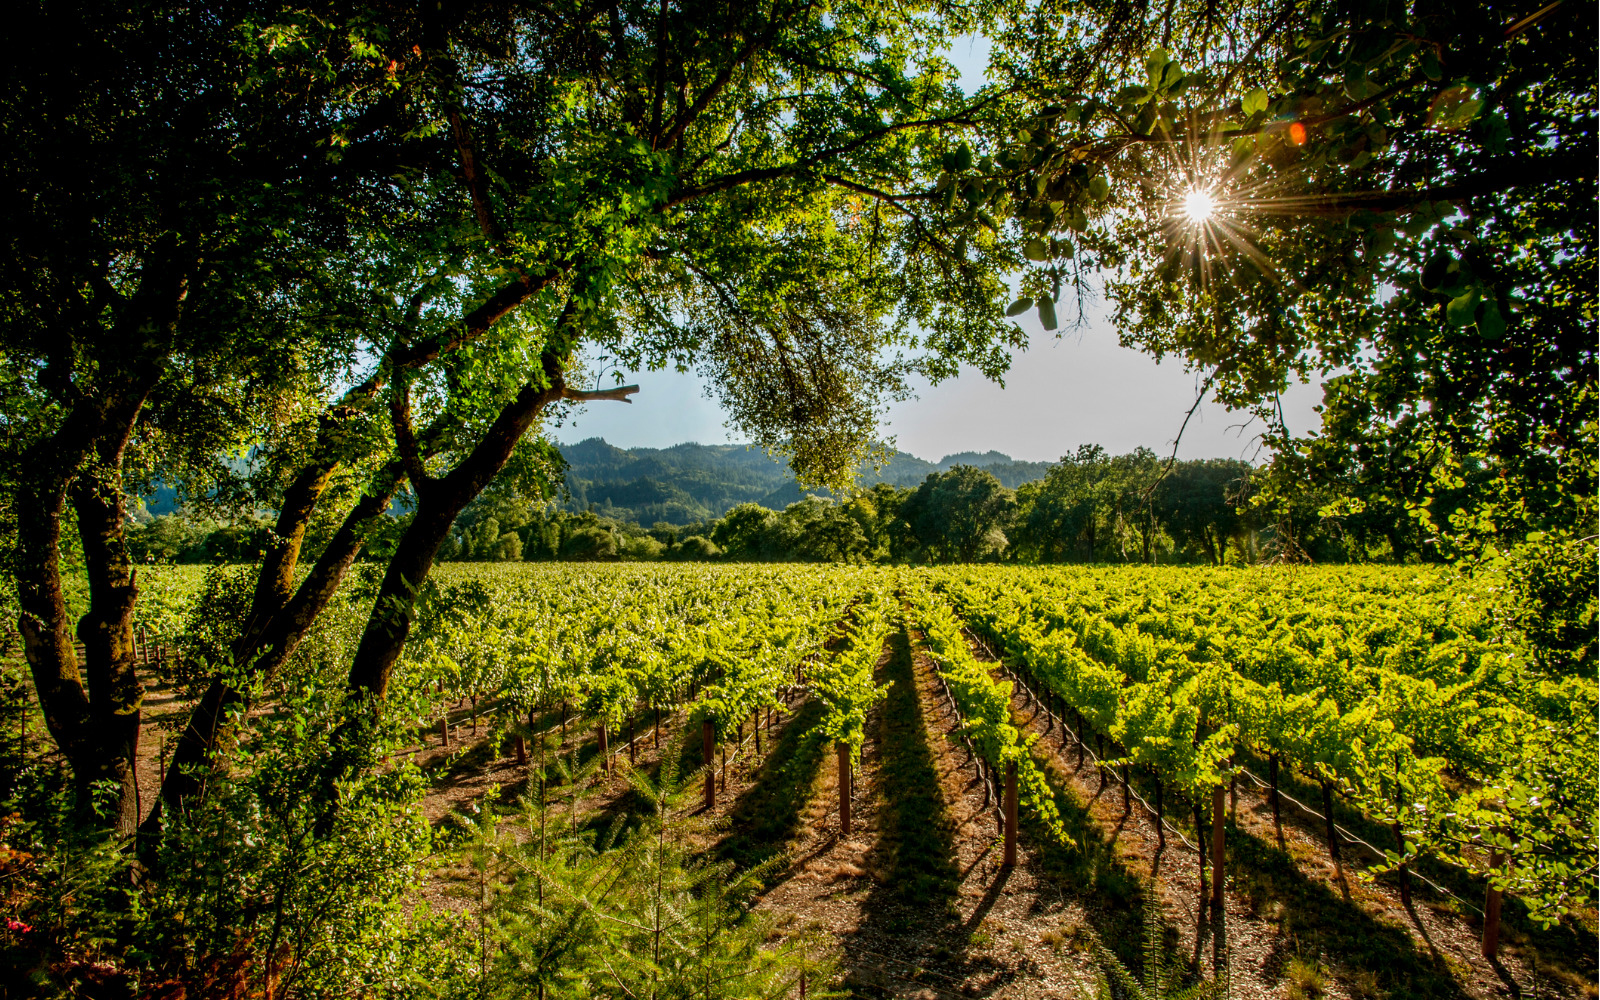 Trees surrounding a vineyard on a sunny day.